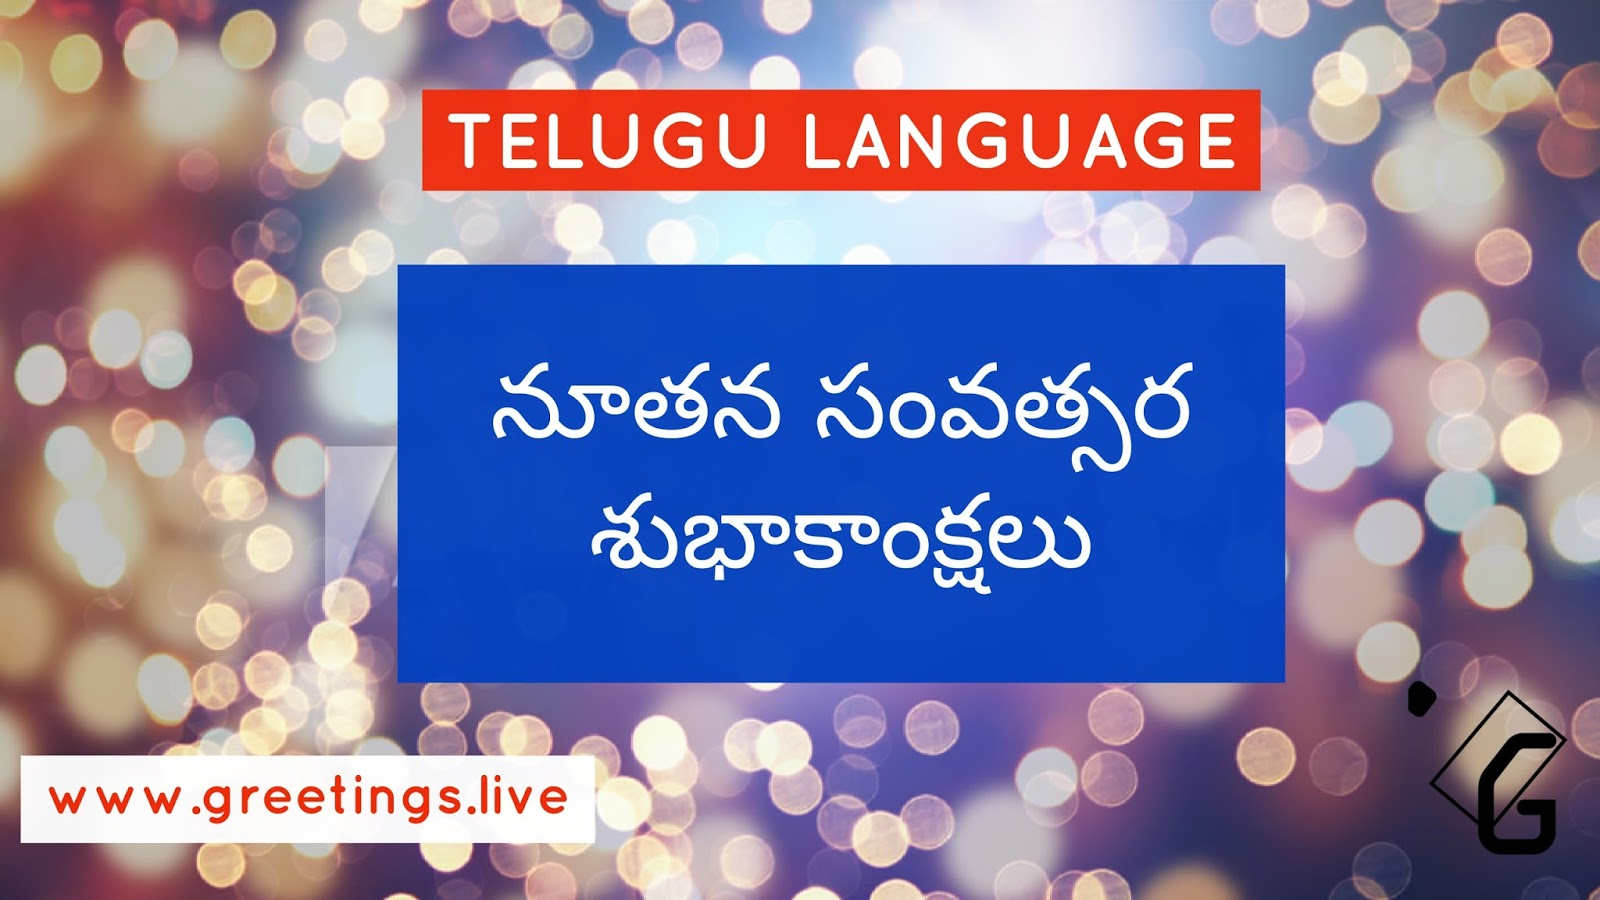 Greetingsve free hd images to express wishes all occasions telugu happy new year 2018 greetings live m4hsunfo